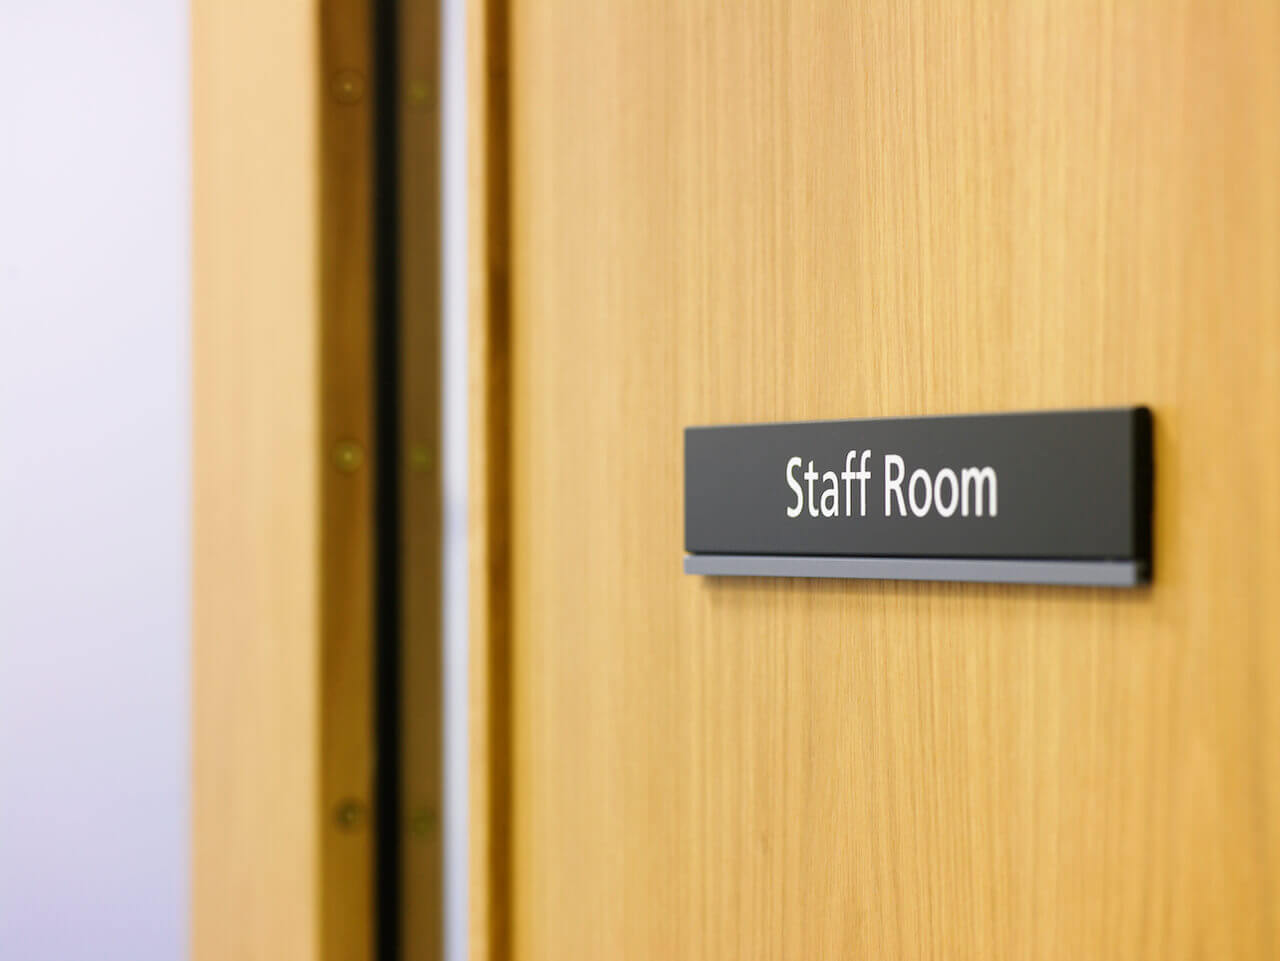 A staff room label sign on a door